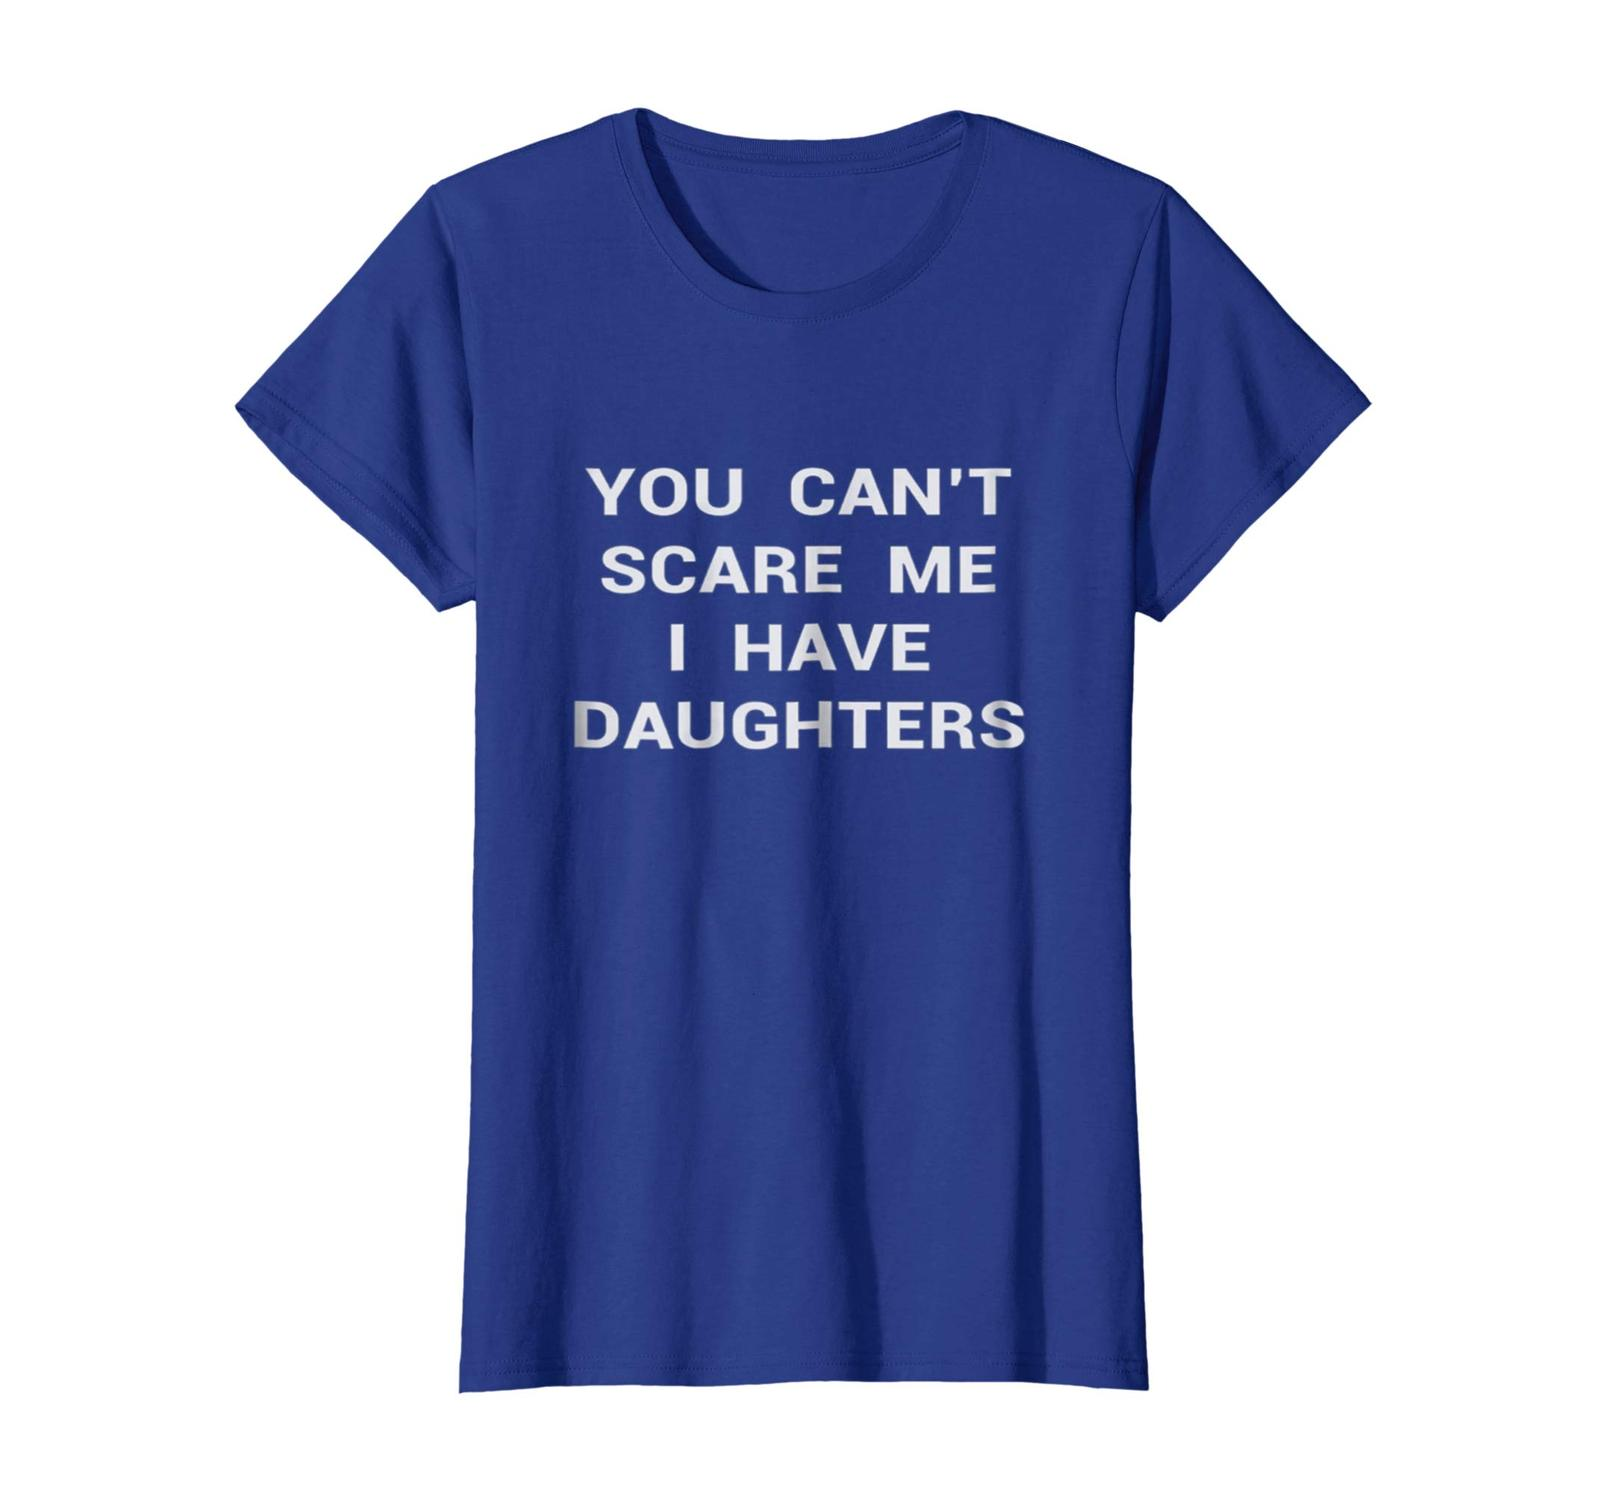 Brother Shirts - Daughter Shirt Fathers Day Gift Dads Stepdad Grand Shirt Wowen image 3